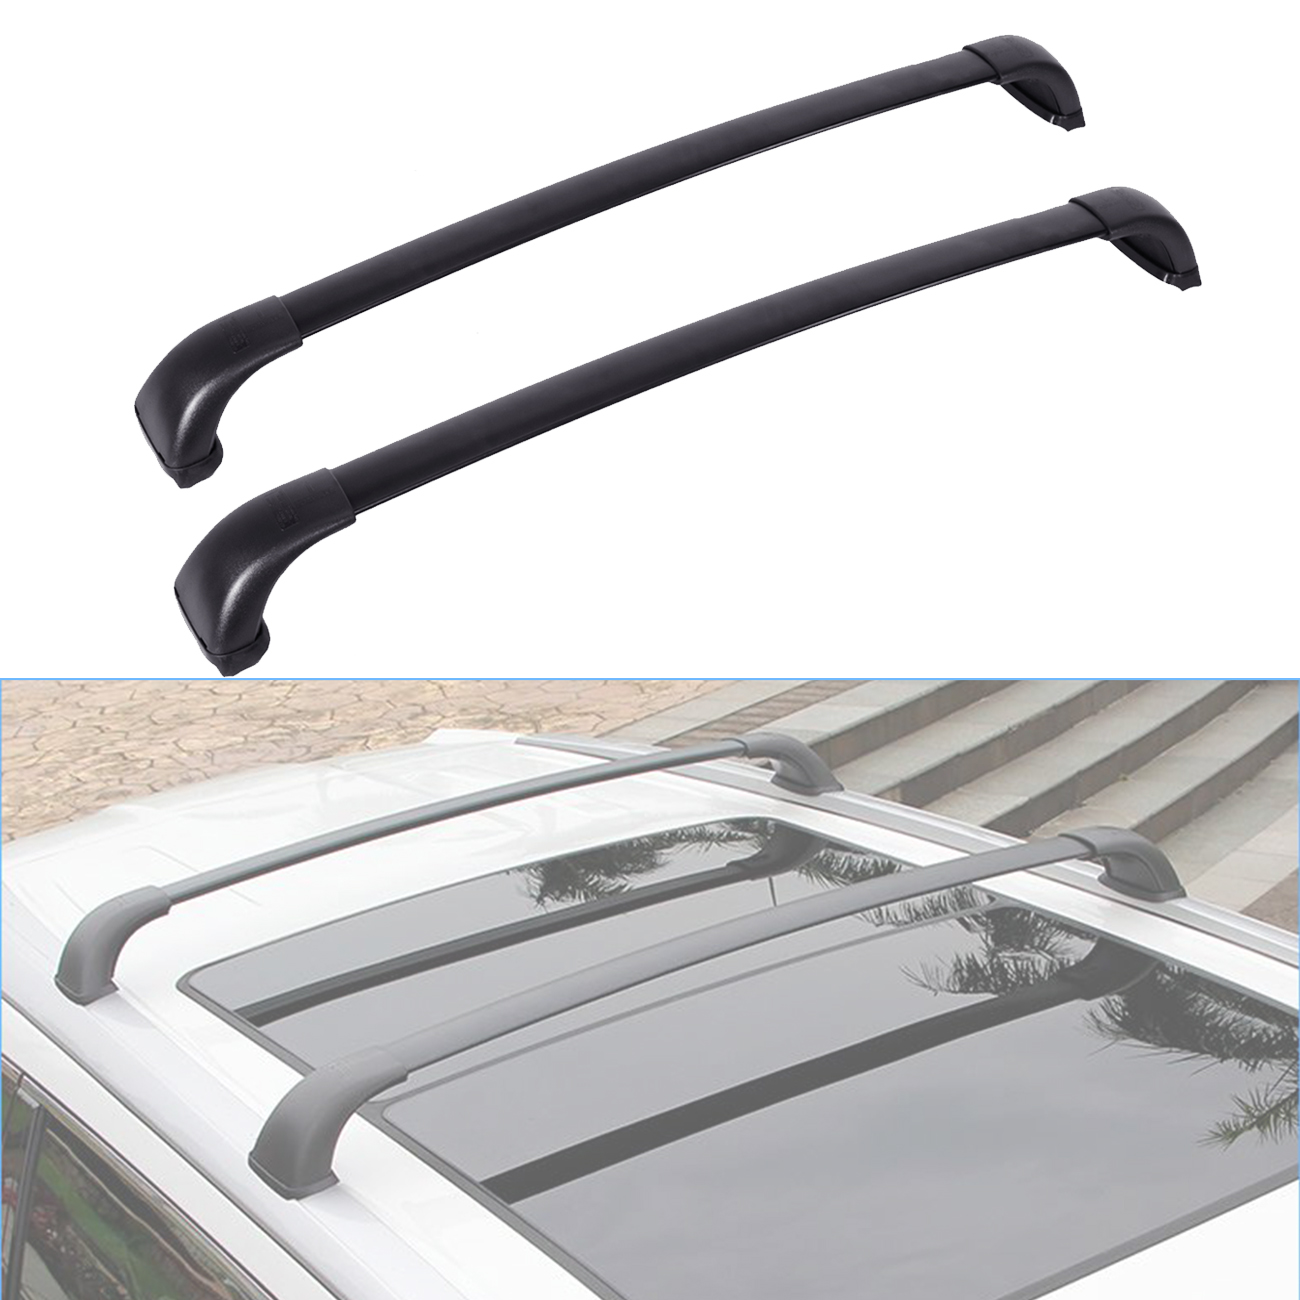 Beamnova Roof Rack Fits Toyota Highlander Le 2014 2015 2016 2017 Cross Bar Top Cargo Carrier Luggage Bike Kayak Basket Mount 1pair Black Aluminum